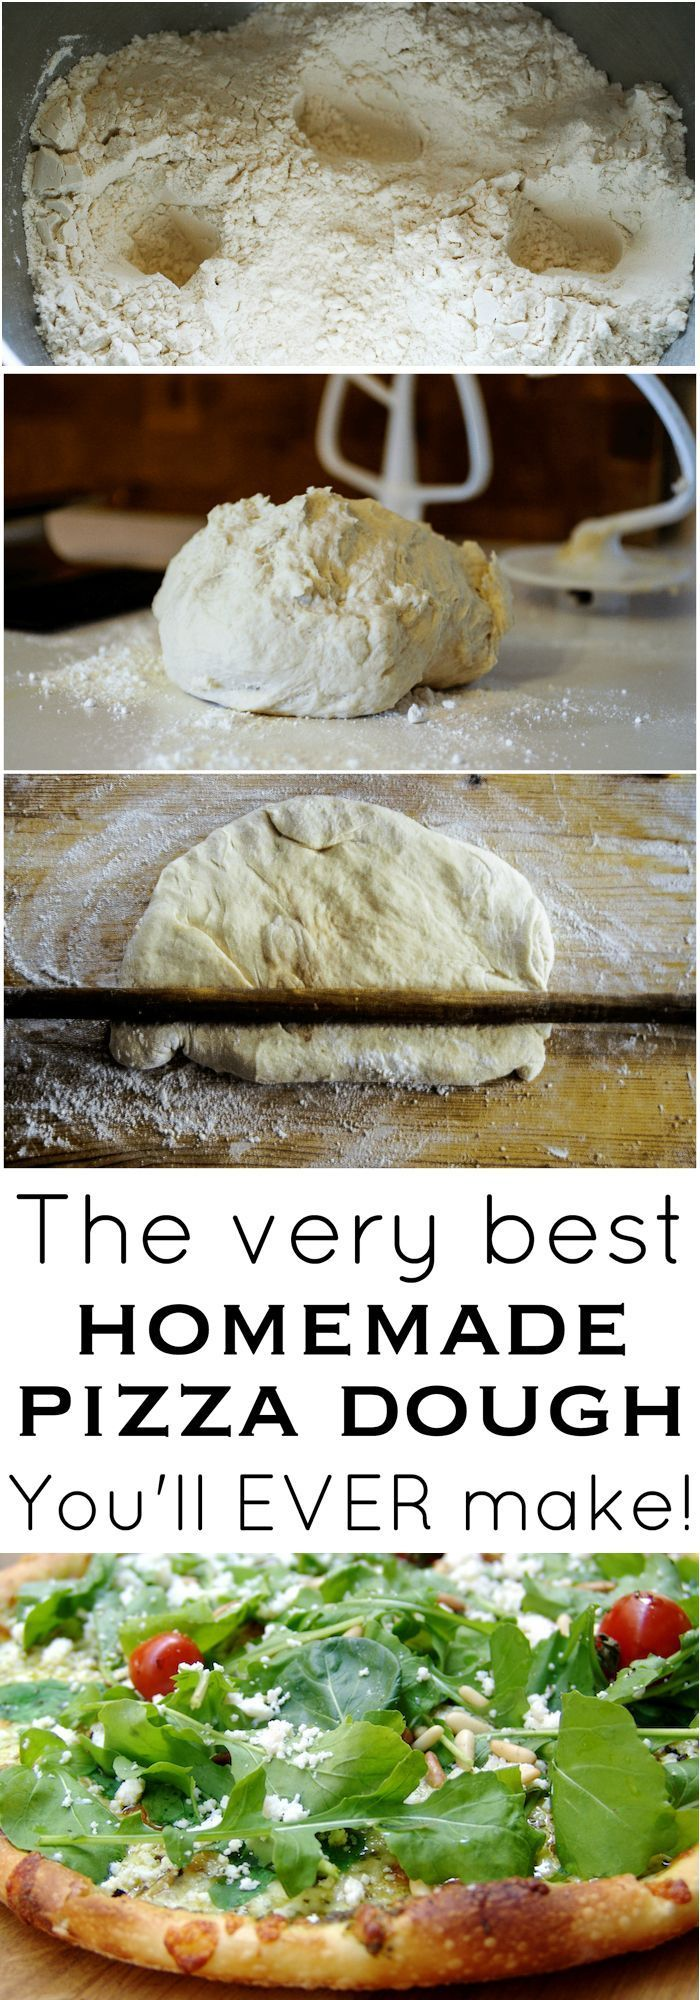 25 Best Ideas About Crust Pizza On Pinterest Easy Pizza Dough Pizza Dough